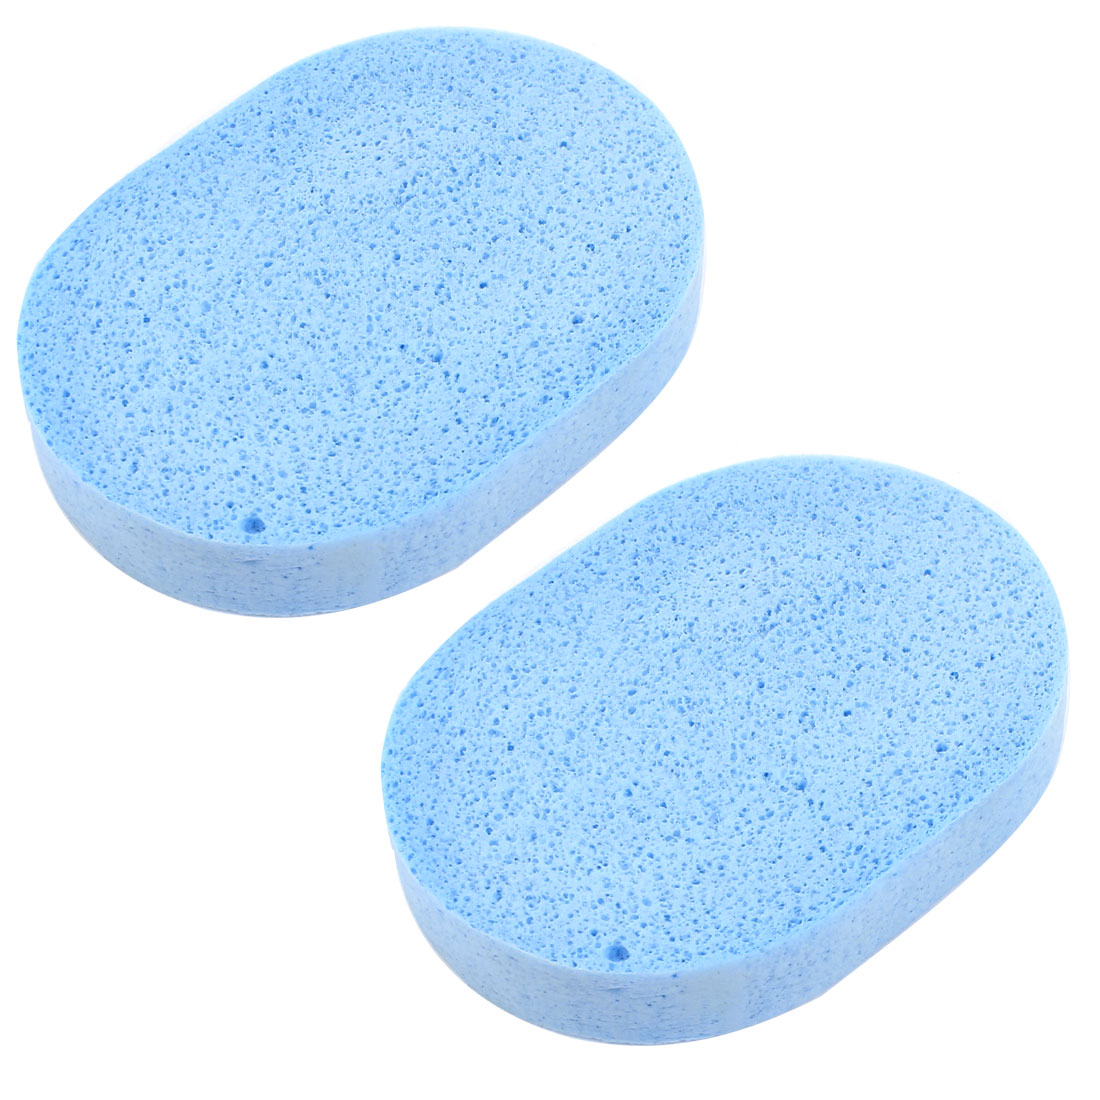 Blue Oval Make Up Facial Face Washing Cleansing Sponge Puff 2 Pcs